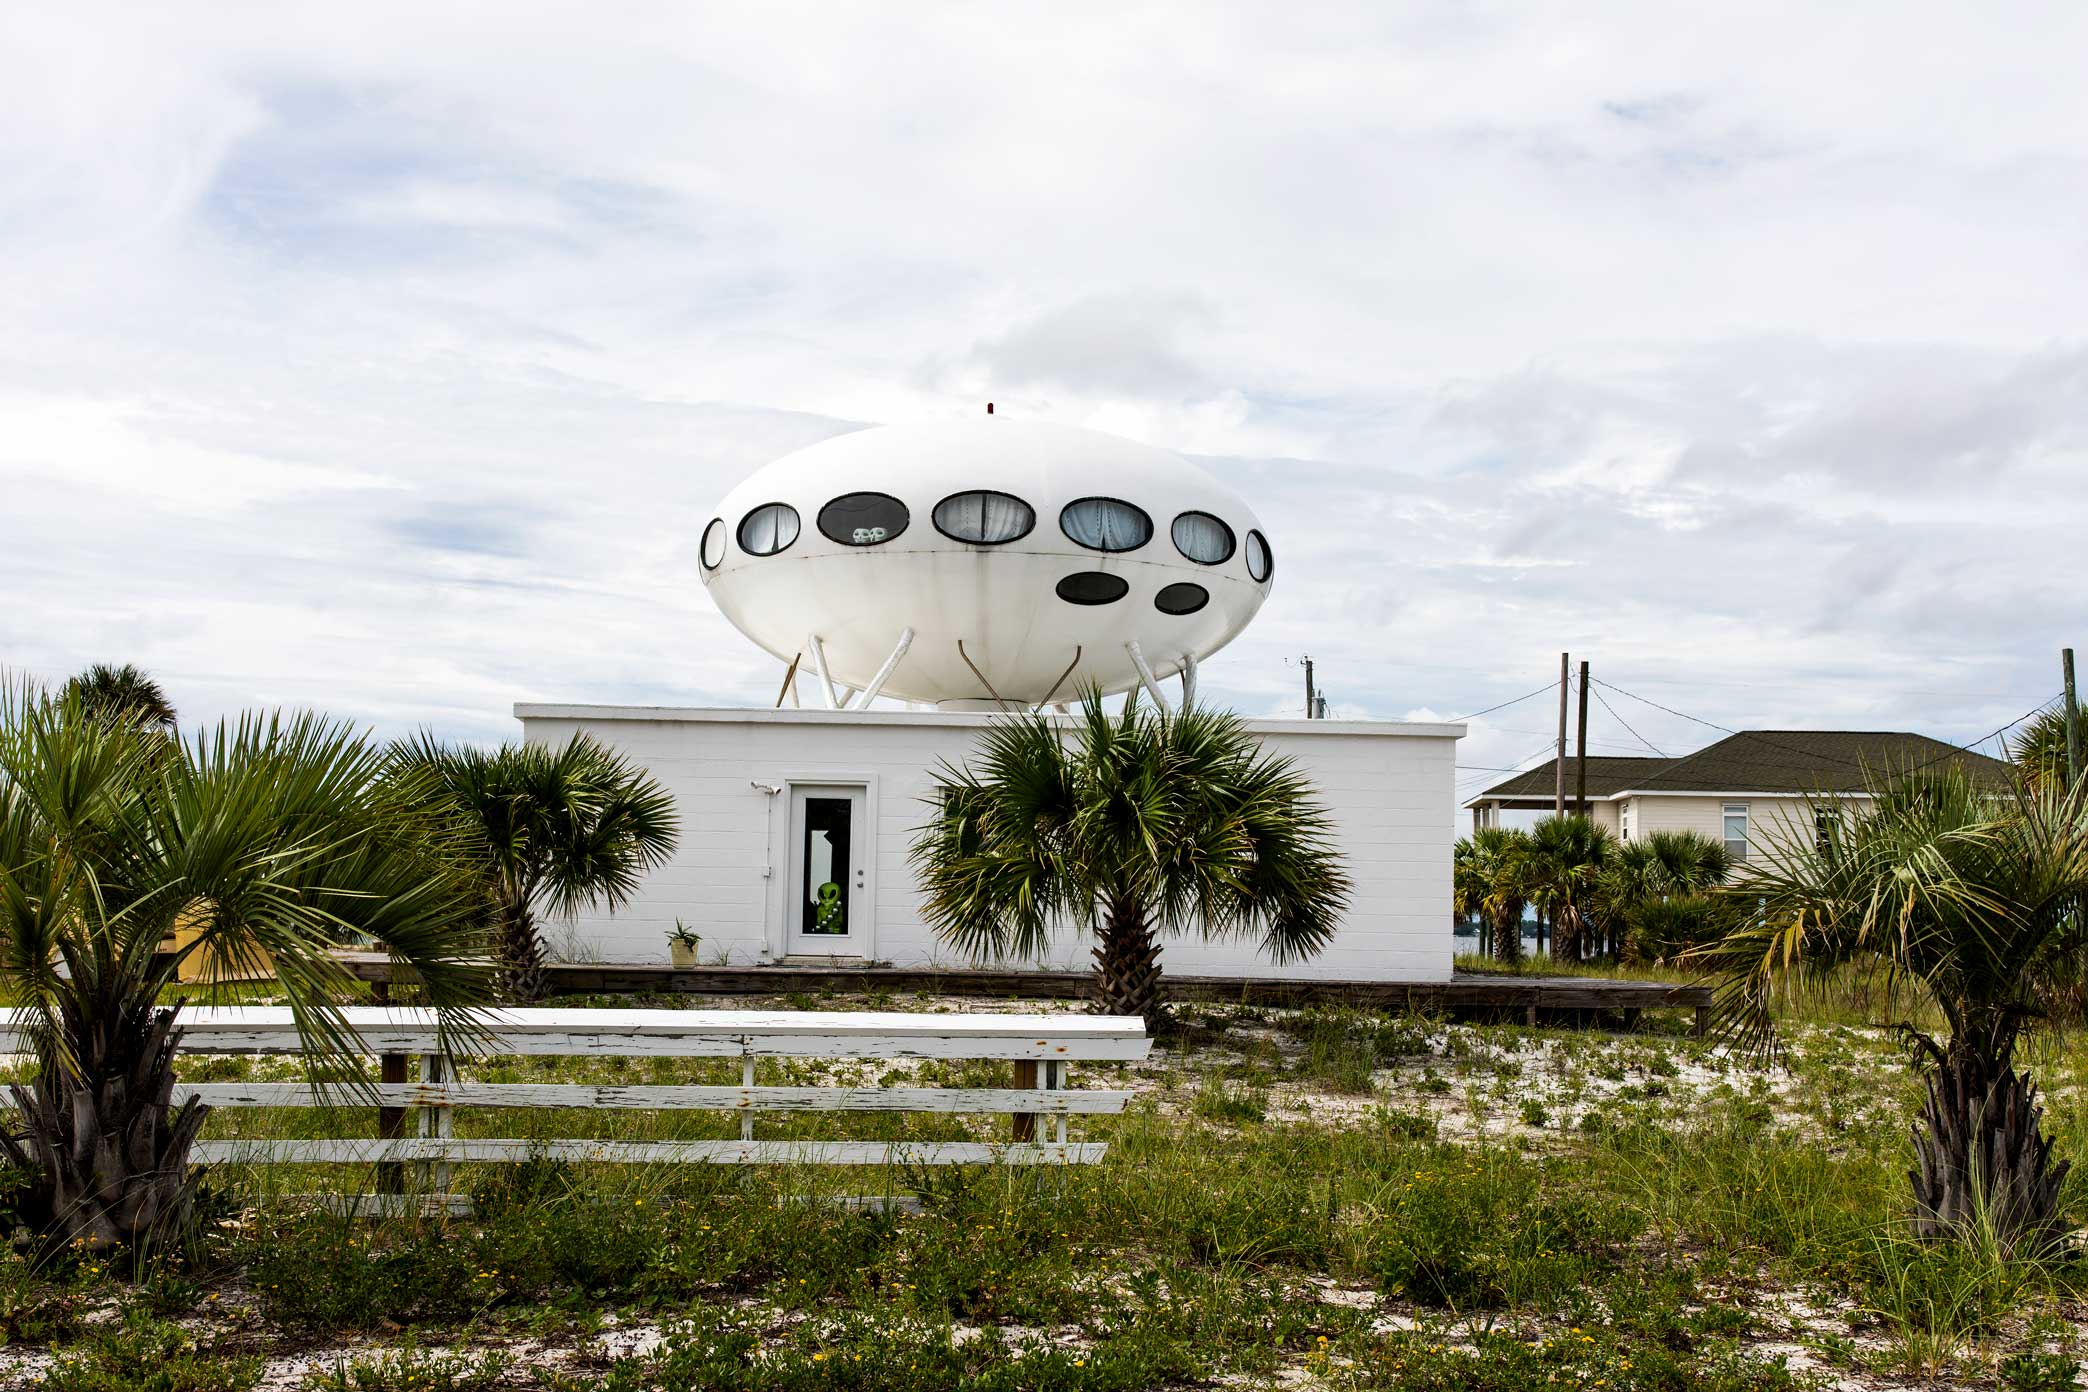 The Futuro UFO Spaceship House in Pensacola, Florida. This is one of at least 64 spaceship houses,called Futuros. They are located everywhere from Los Angeles to Antarctica. Read more  here  and see a map of the locations  here .  Canon 5D Mark IV